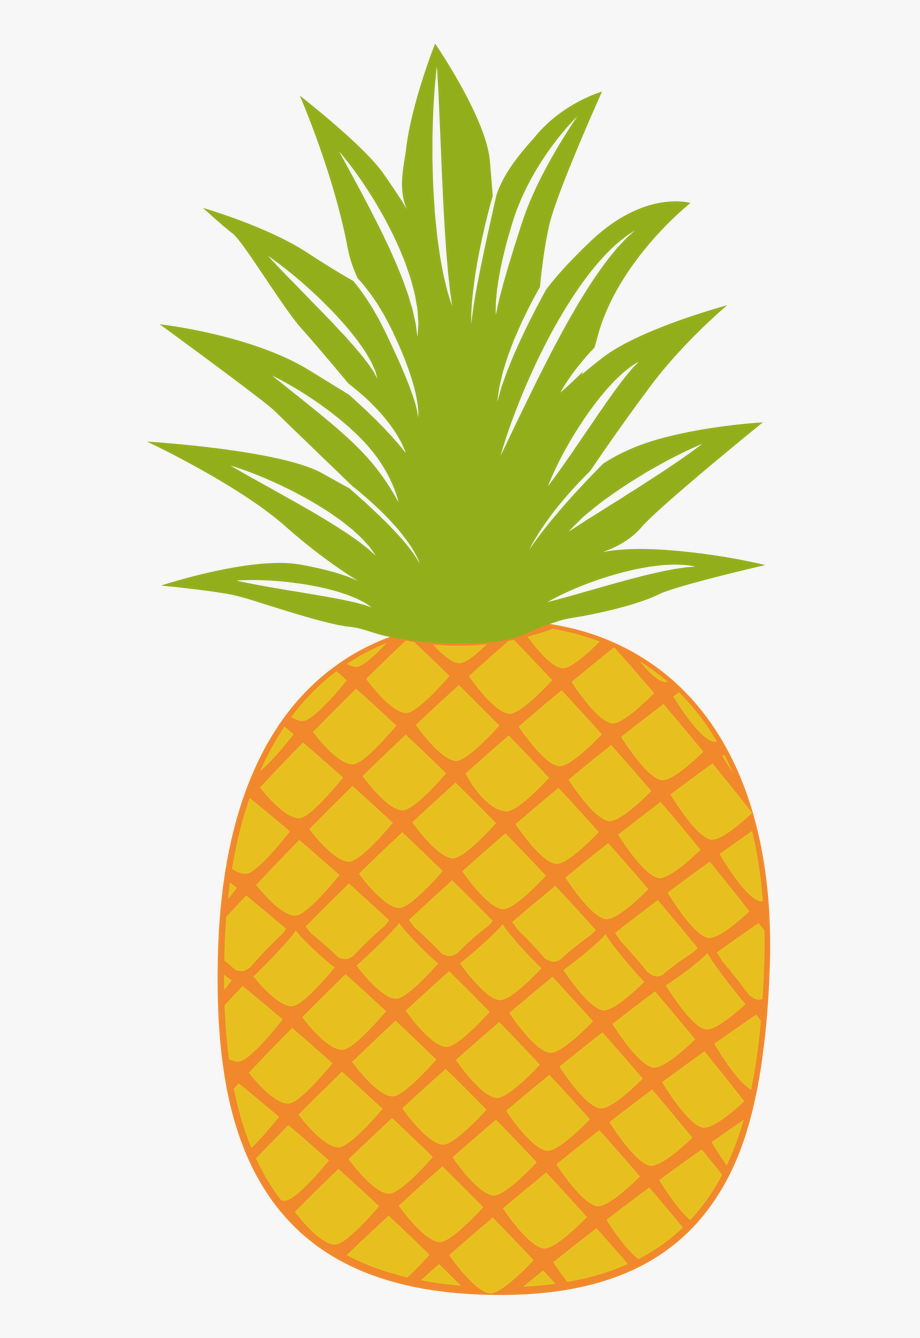 Ananas clipart png picture Pineapple Clipart Fancy - Gold Pineapple Image Clipart #205568 ... picture